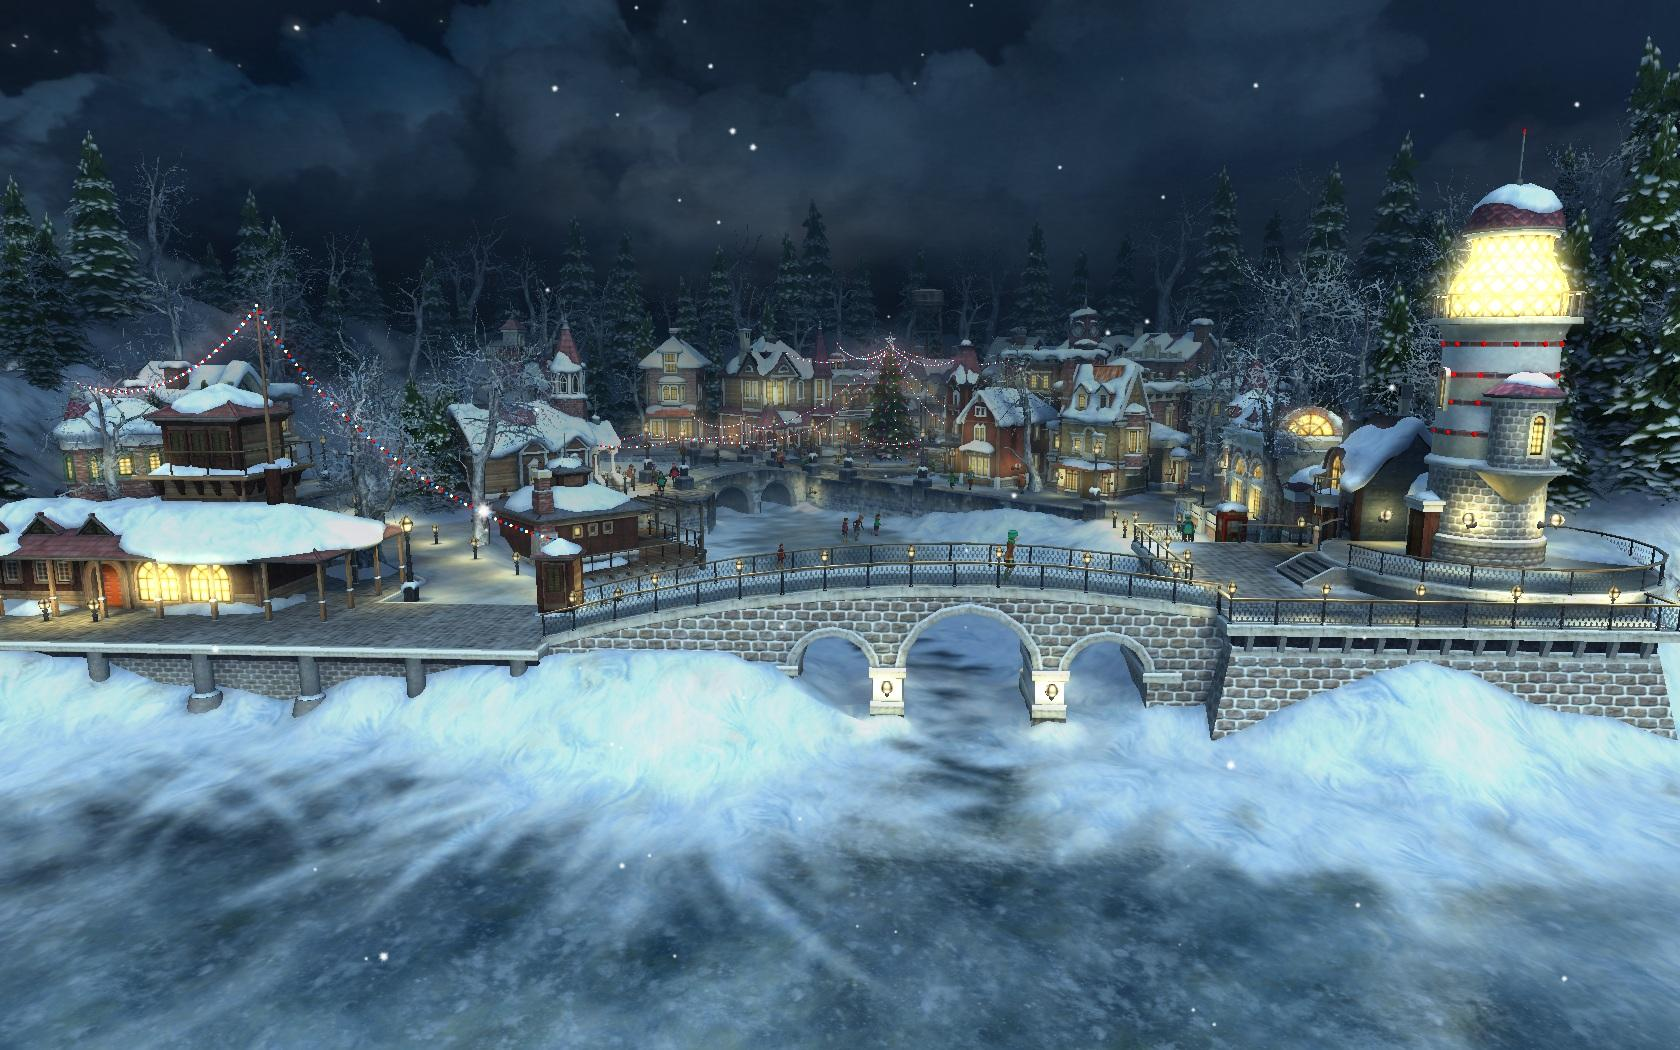 Falling Snow Live Wallpaper Iphone Download Christmas Village Wallpaper Gallery